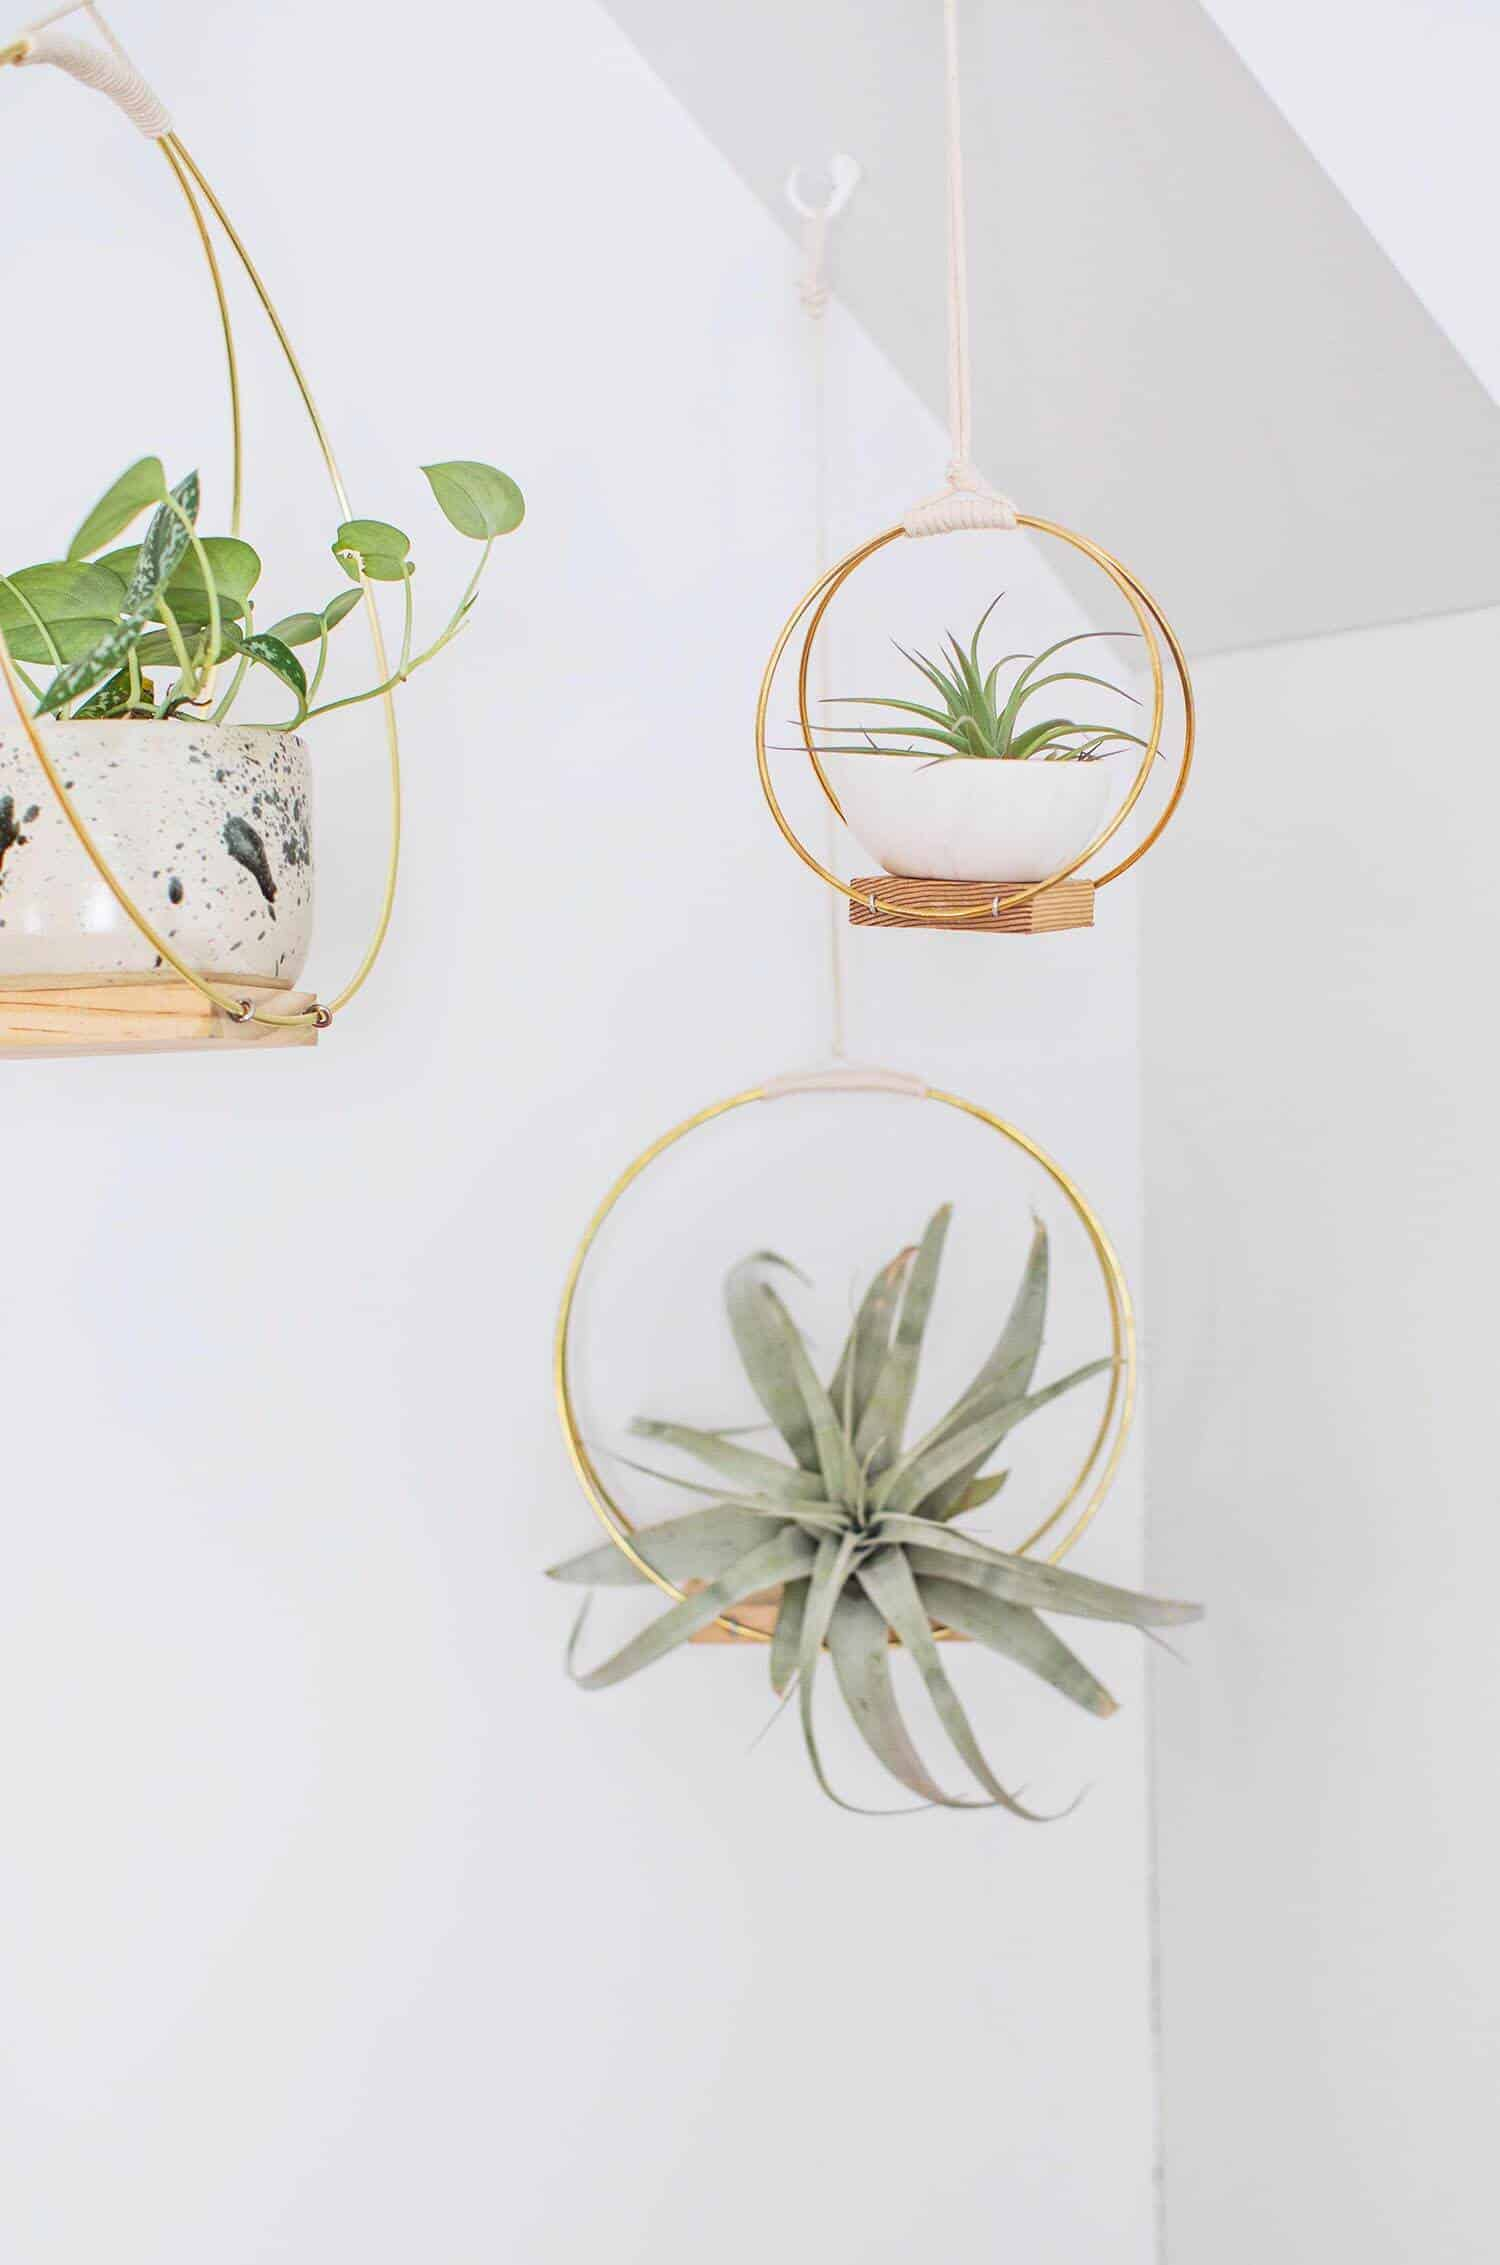 DIY Brass Ring Hanging Planter